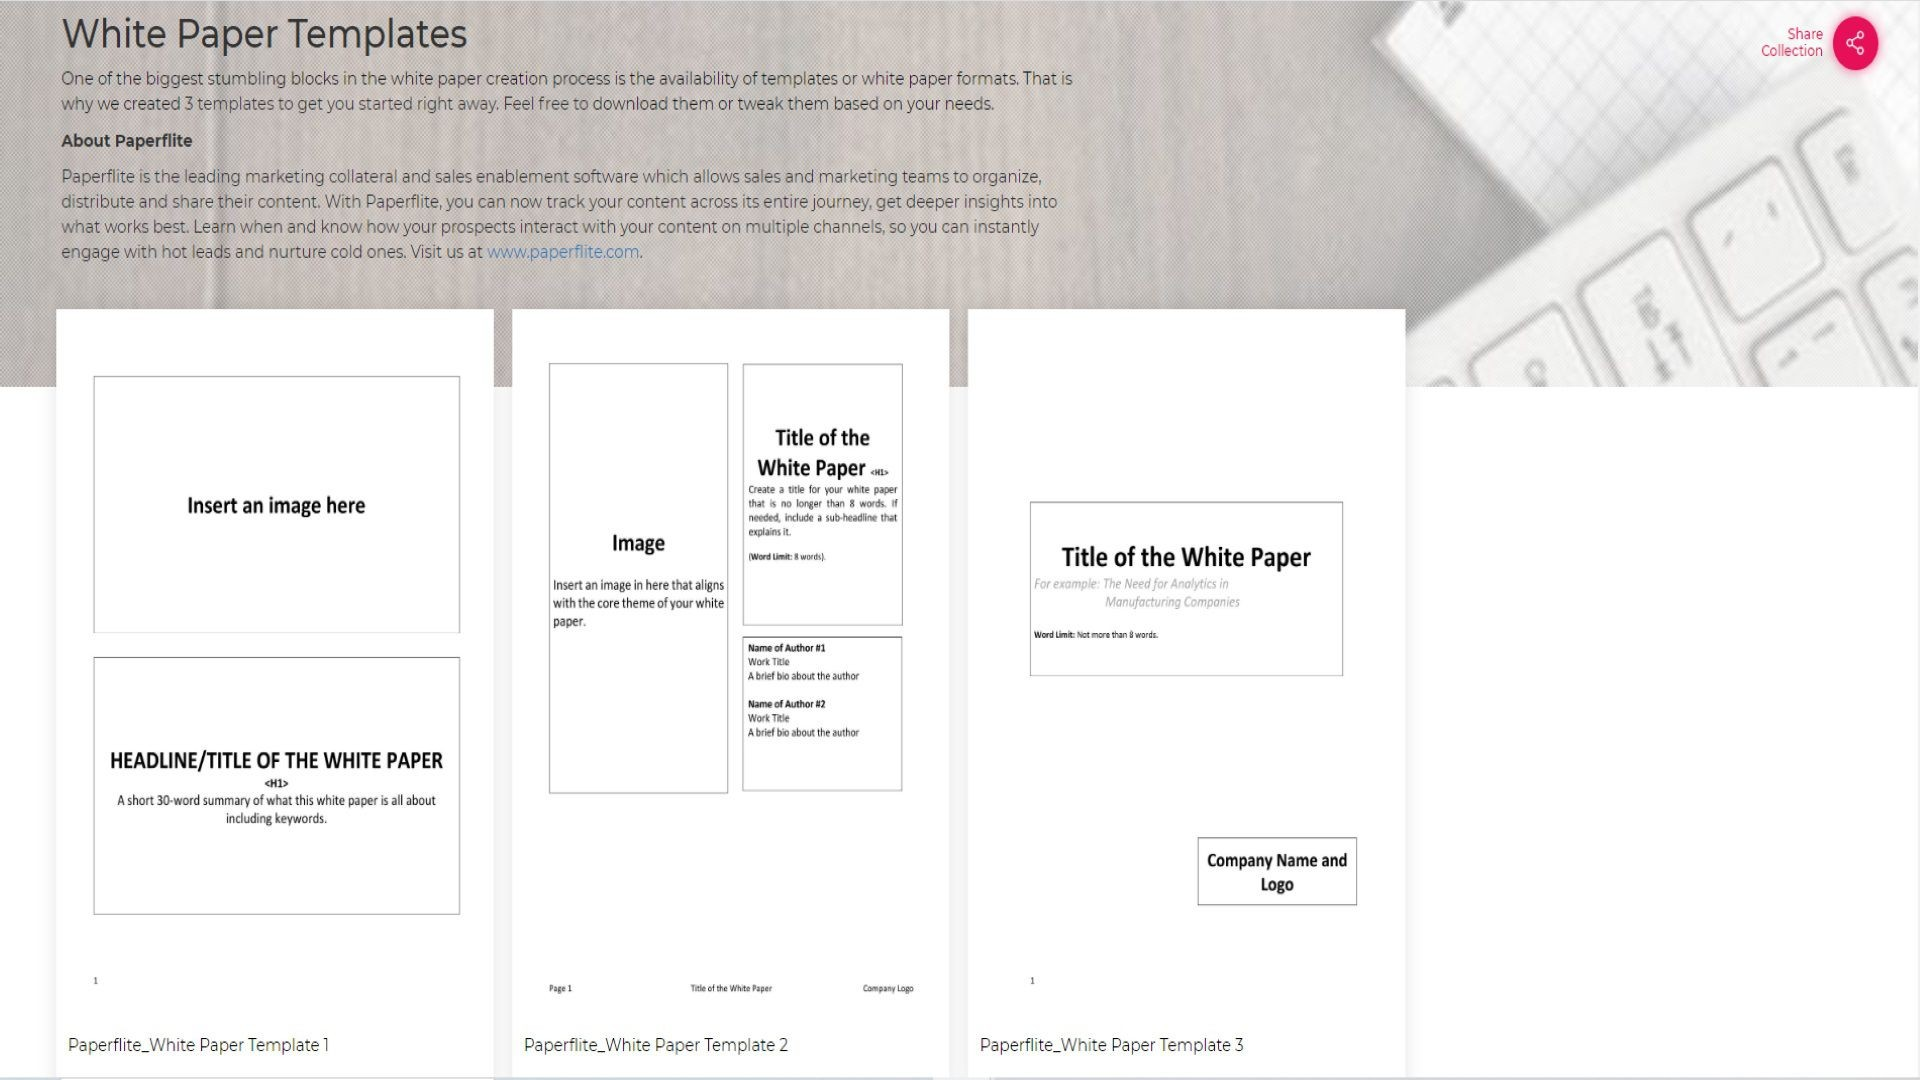 003 Staggering Free White Paper Template Example  Word 2016 Indesign Microsoft1920